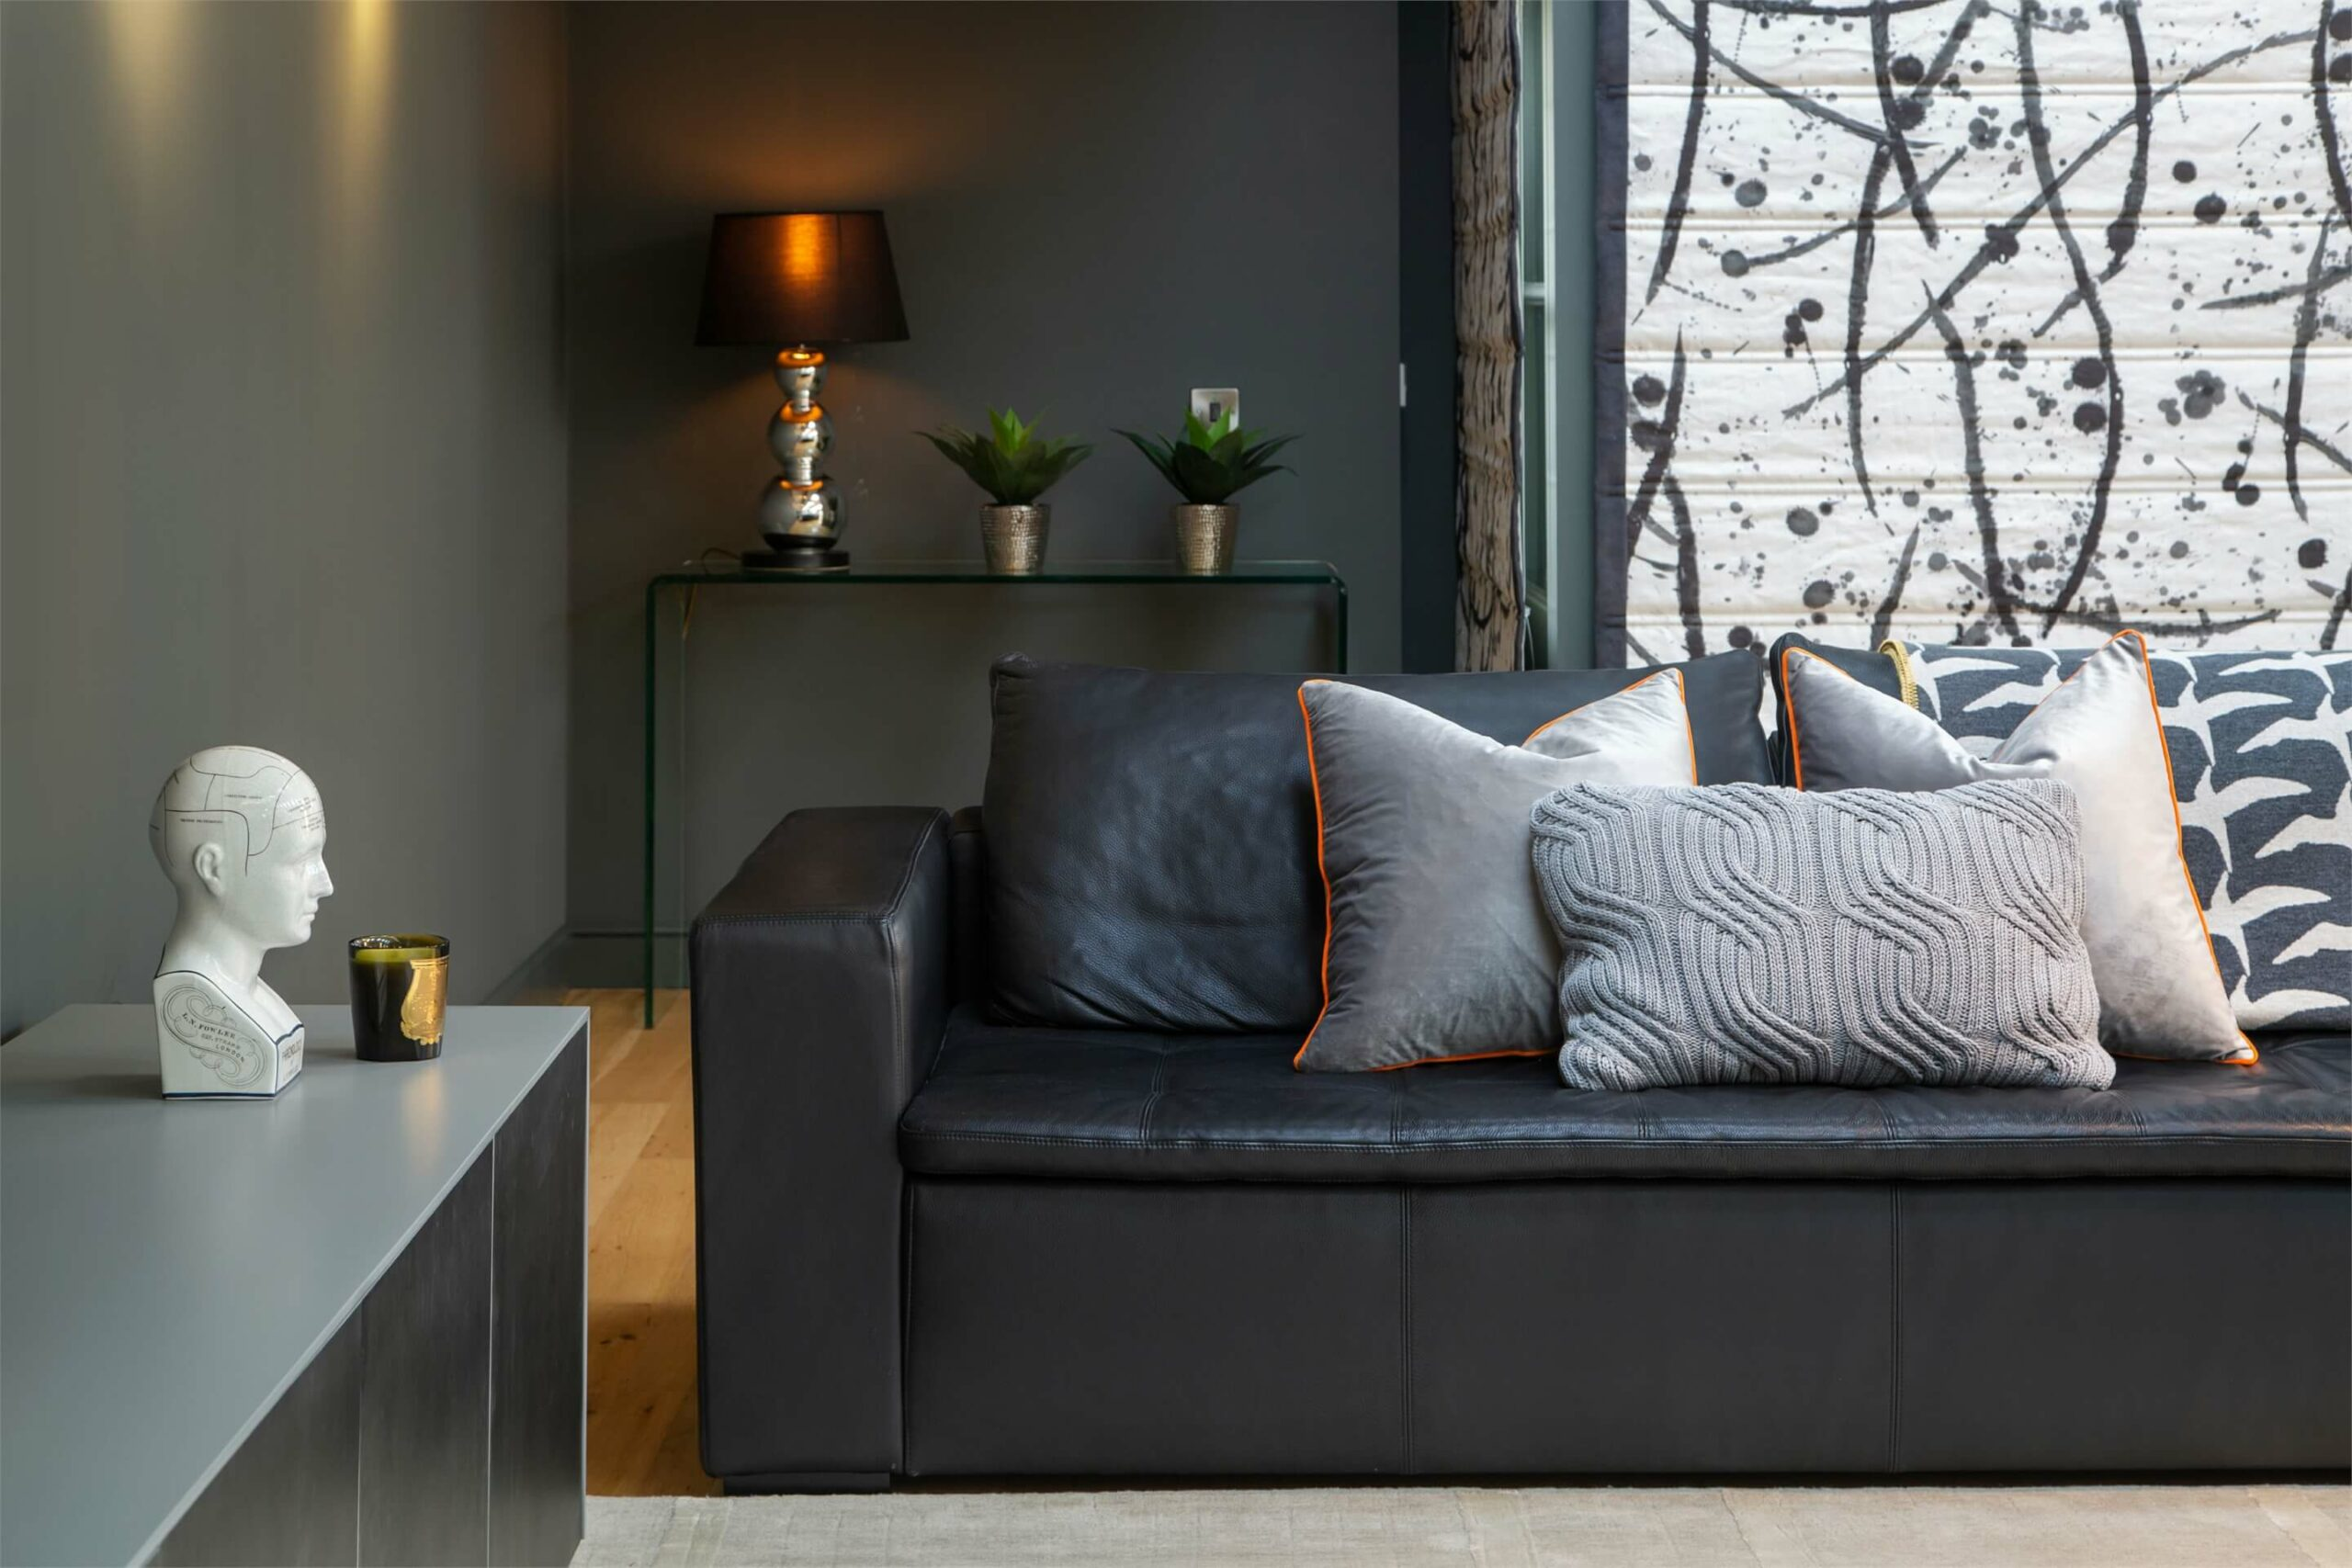 Cushions and accessories complement this masculine scheme